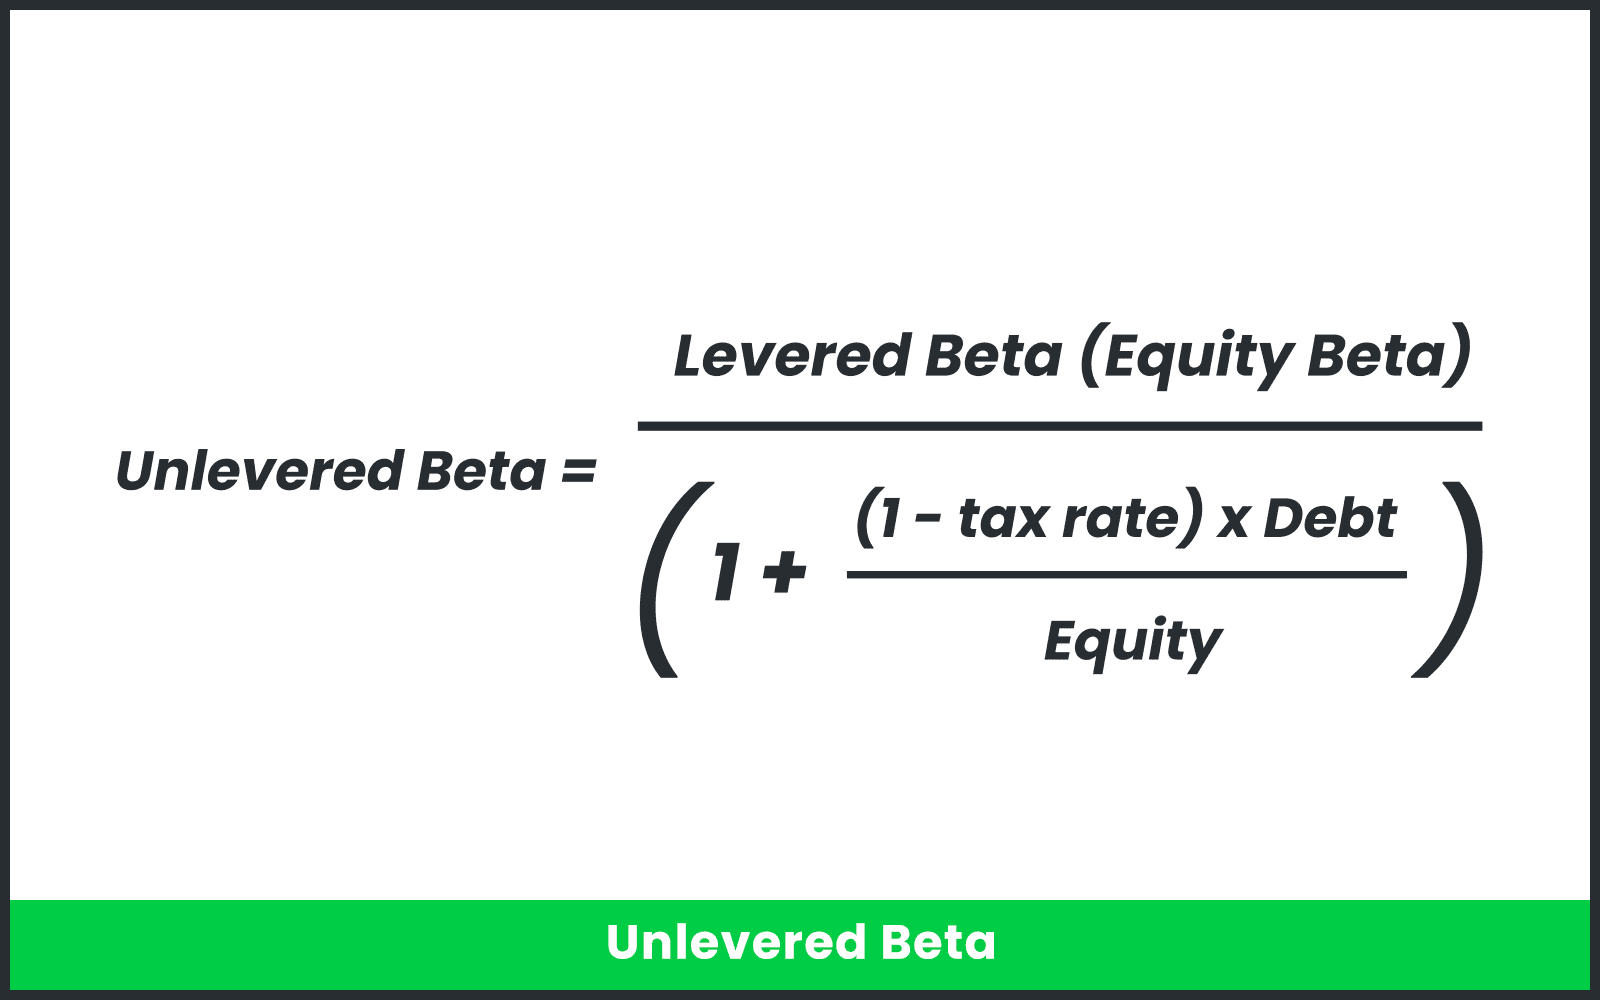 Unlevered Beta expressed as an equation.